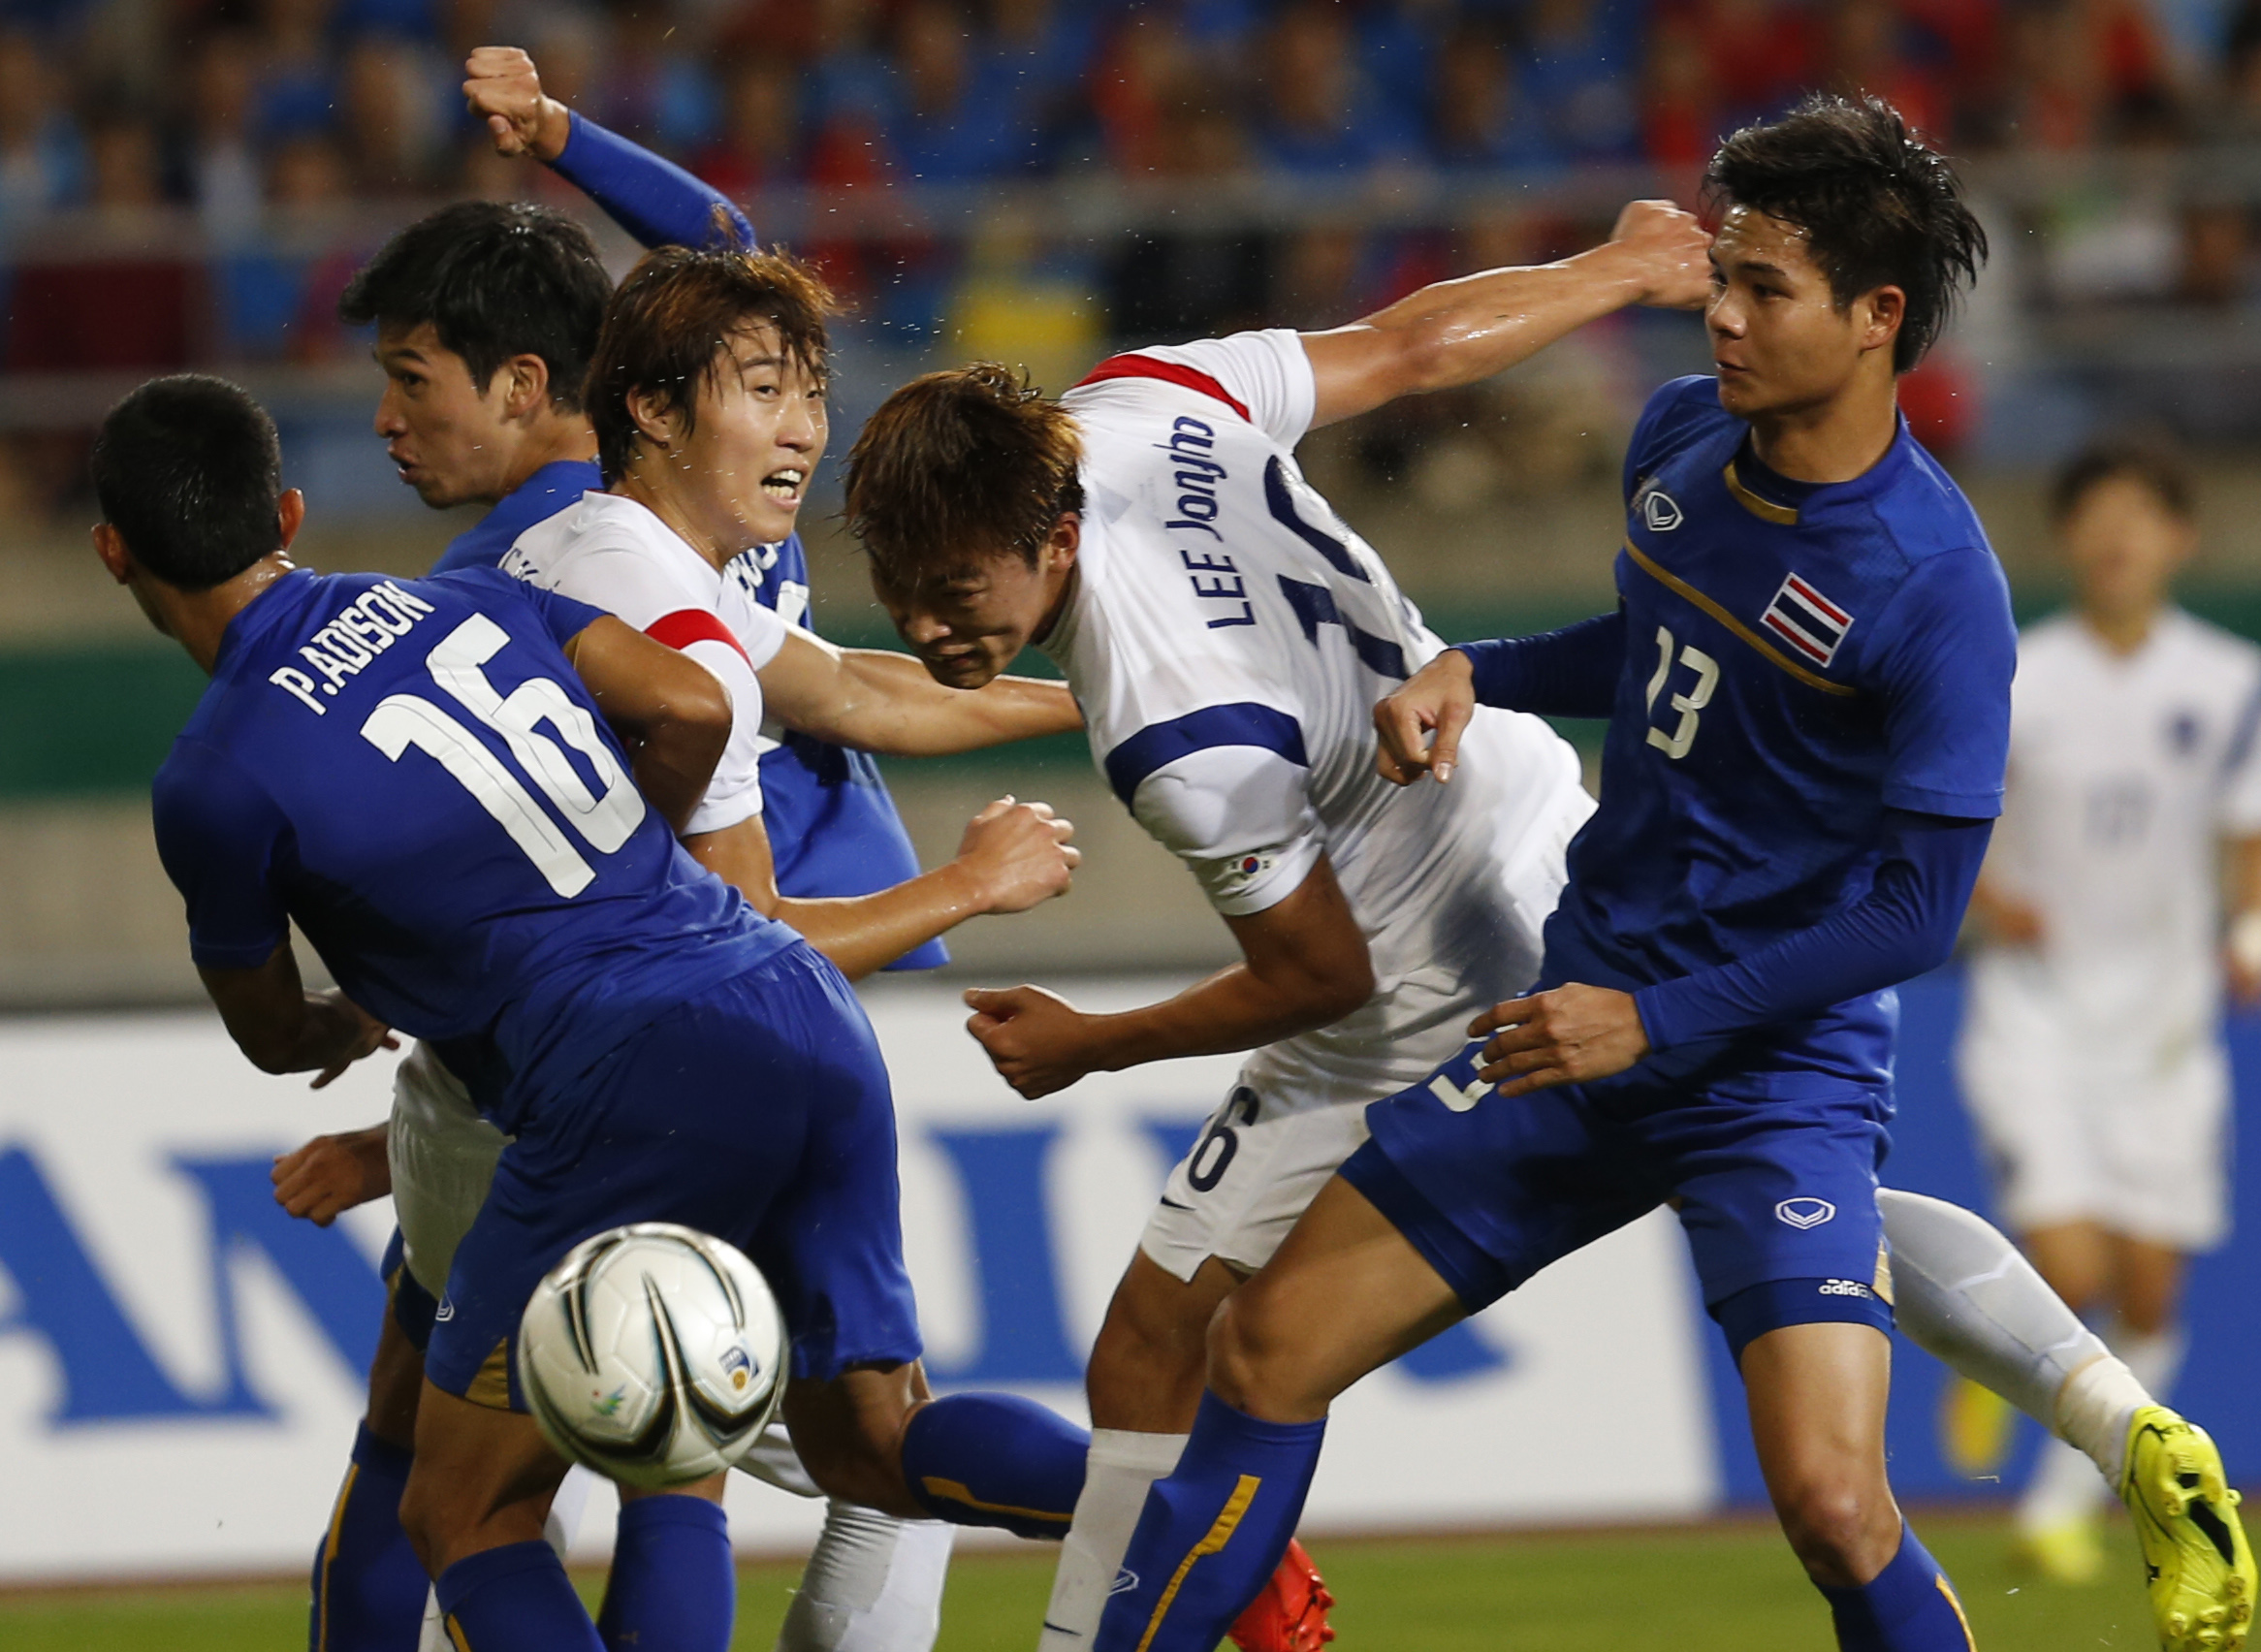 South North Korea To Meet In Asian Games Football Final